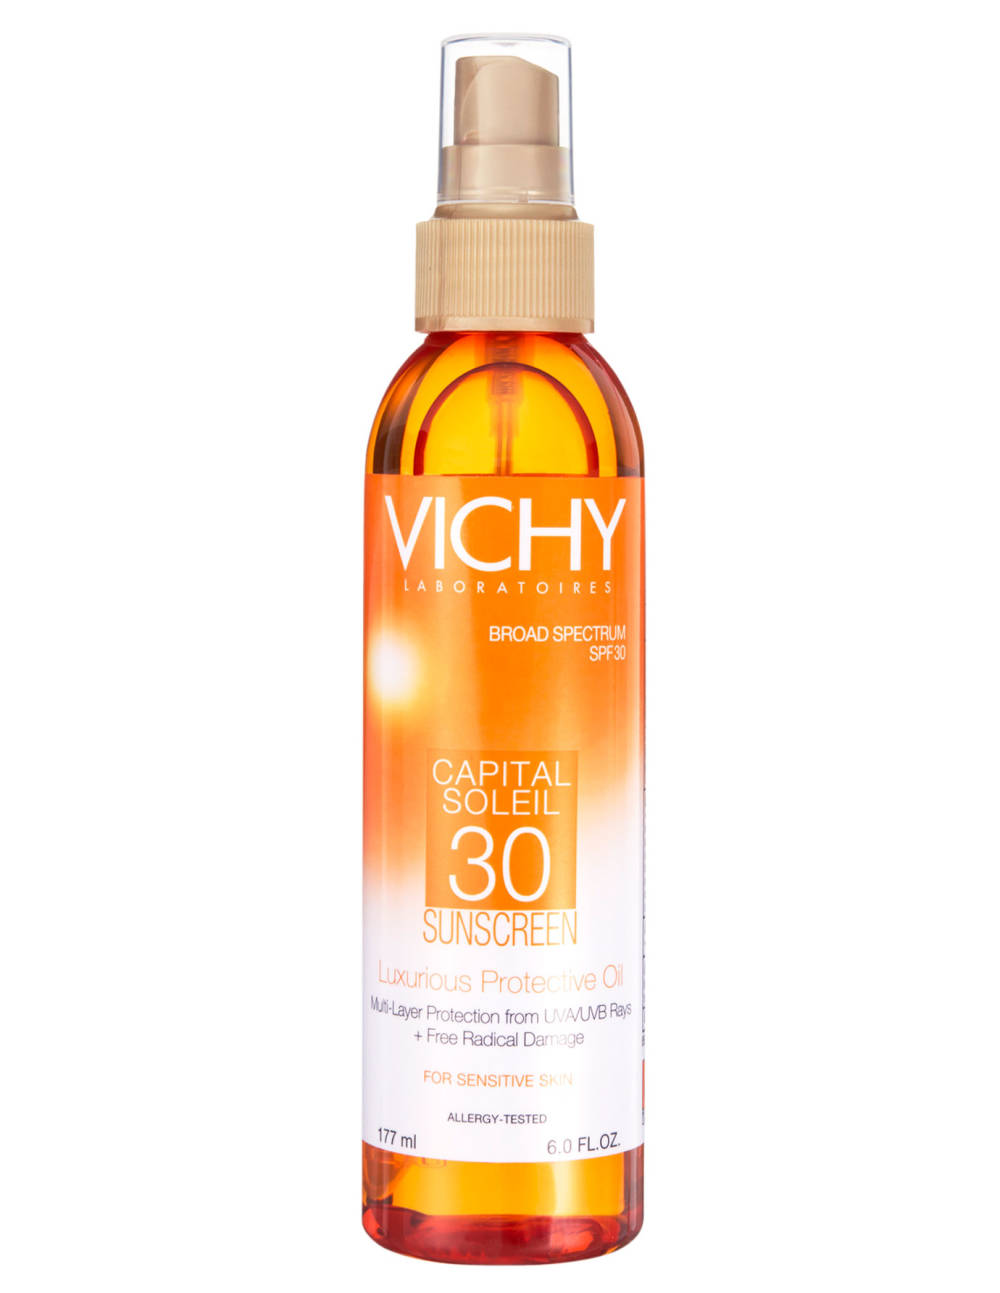 Vichy Luxurious Protective Oil SPF 30